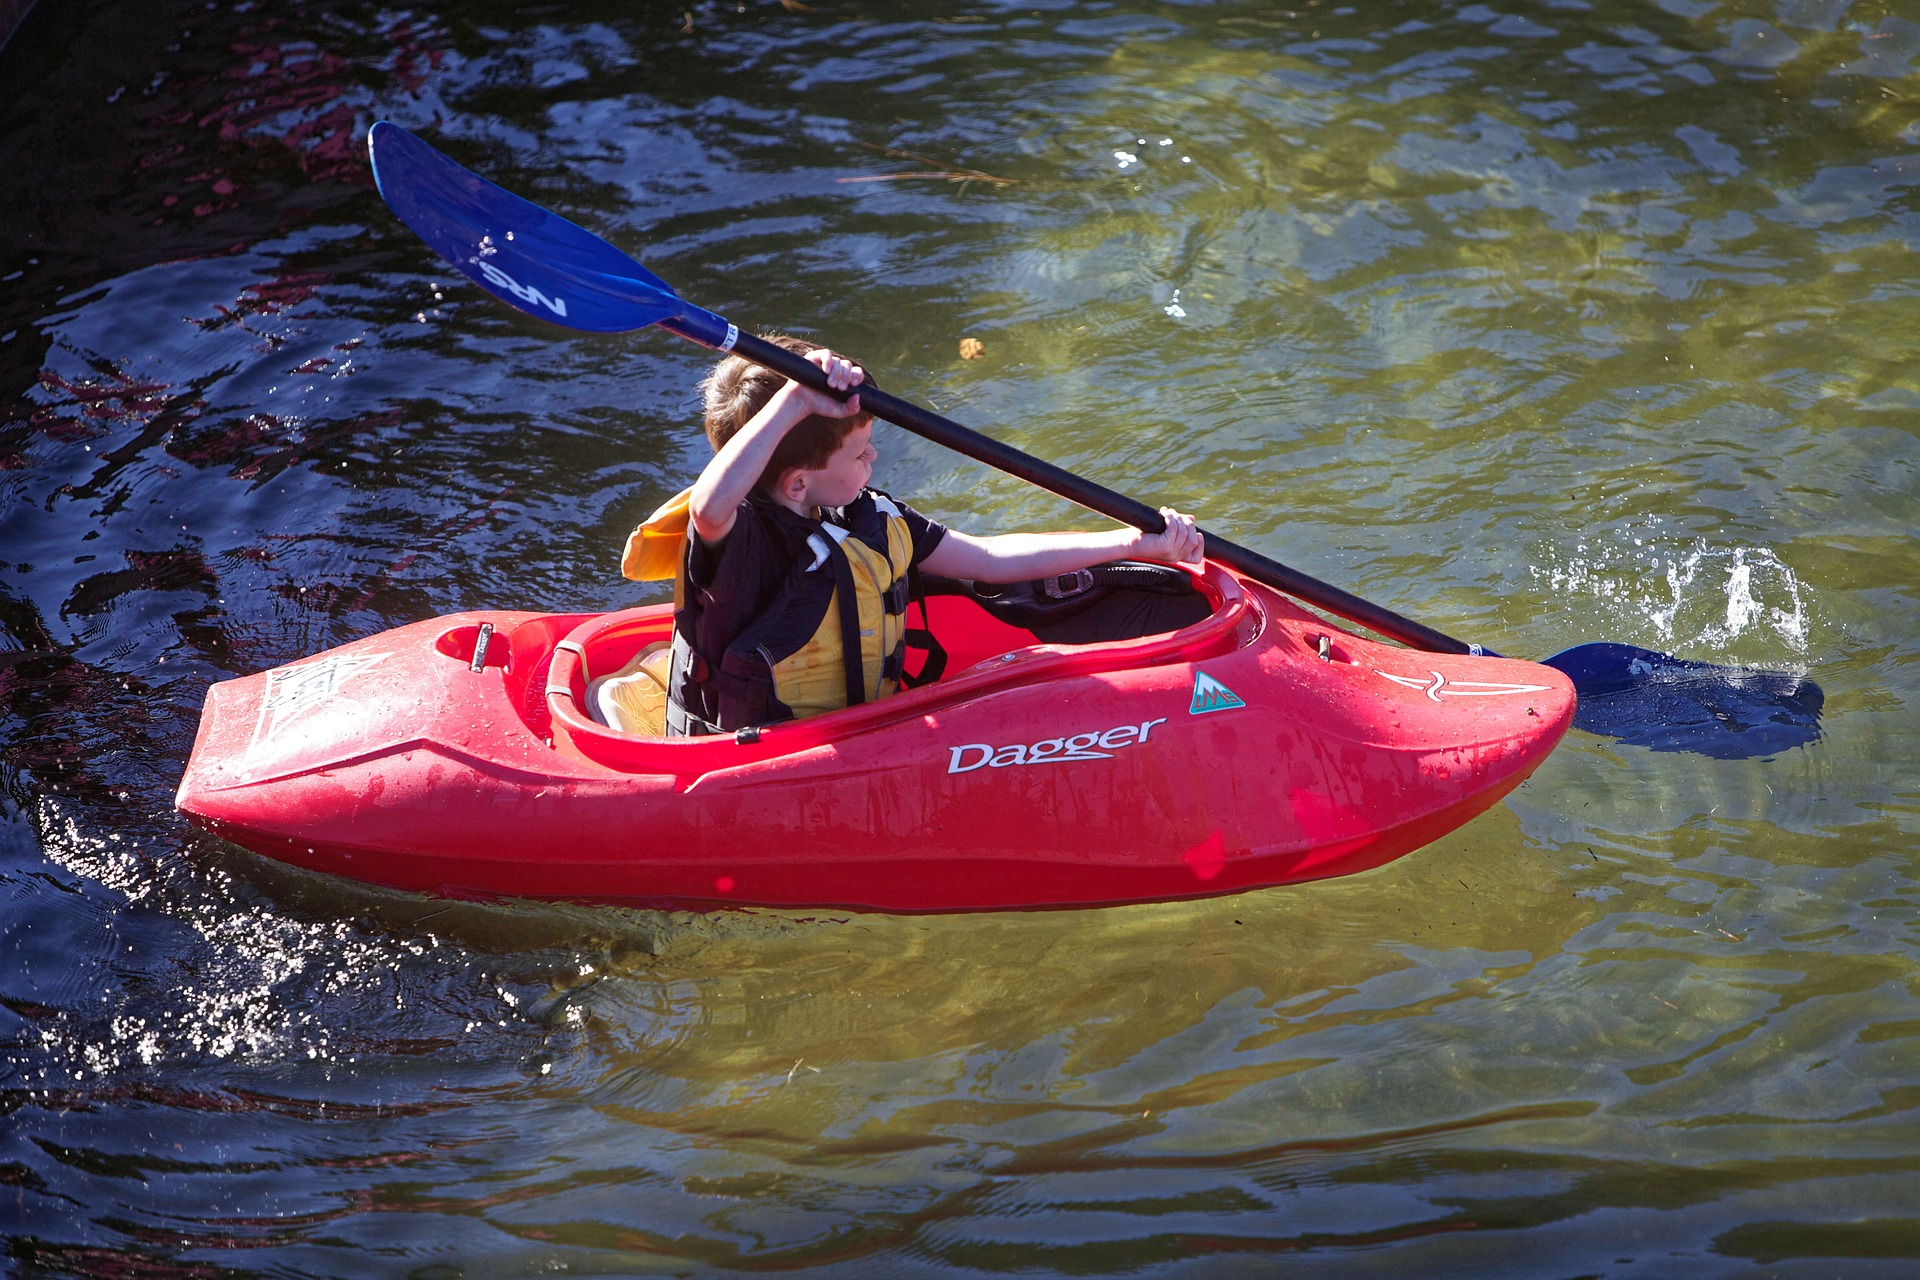 Little boy is paddling the kayak while wearing the best life jackets for kayaking